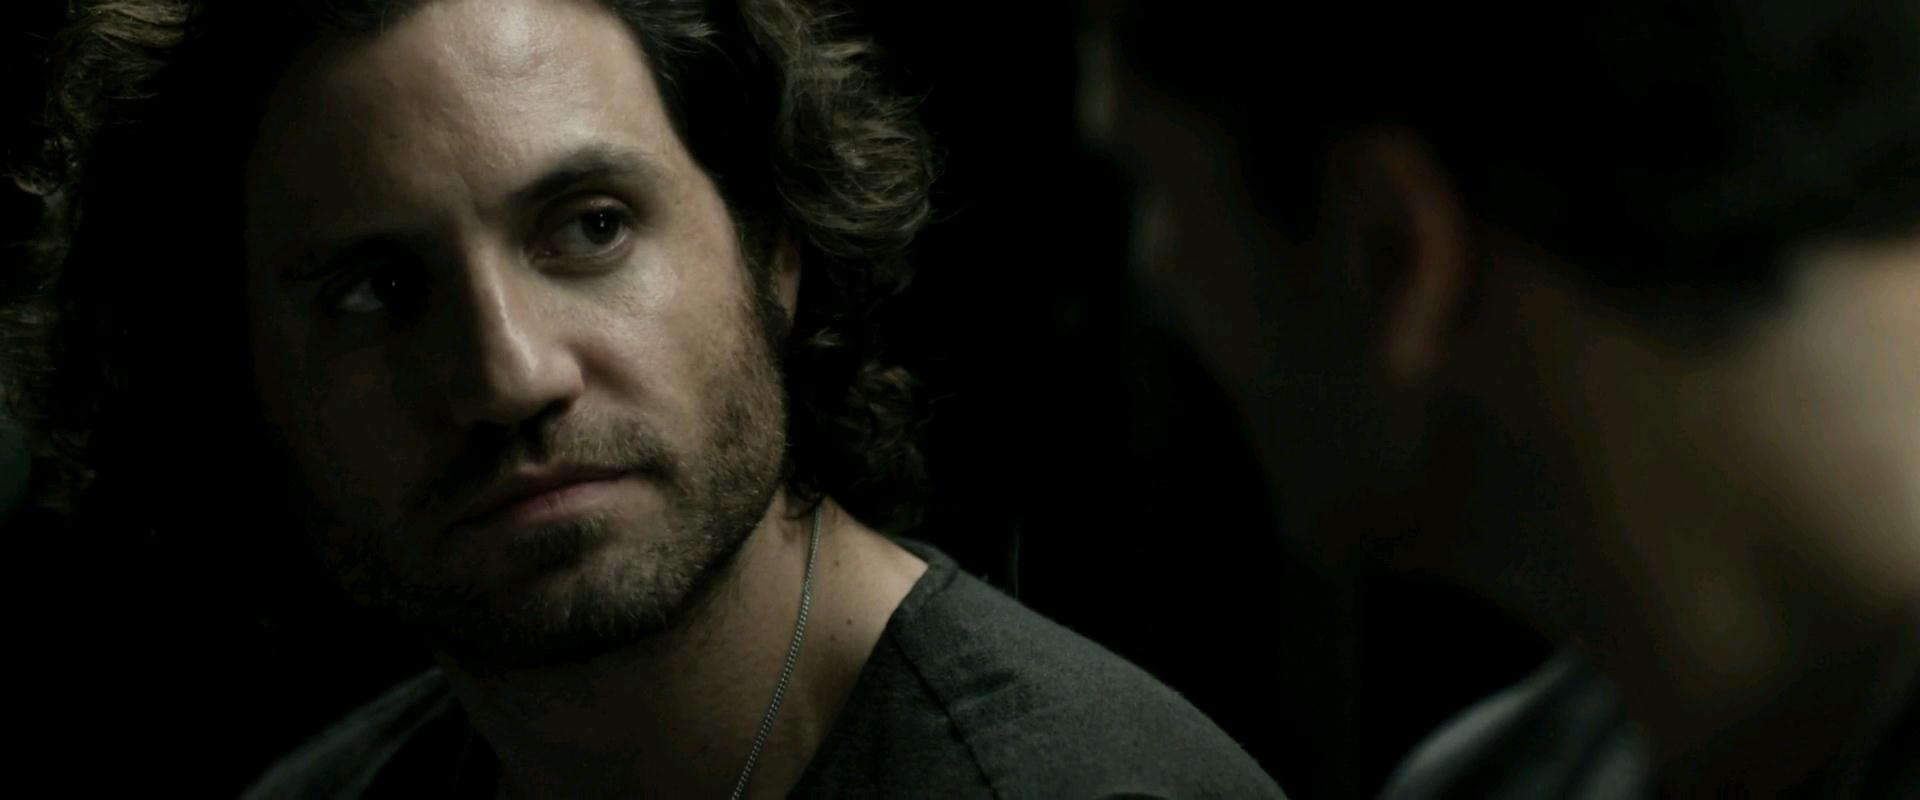 Edgar Ramirez photo #647225